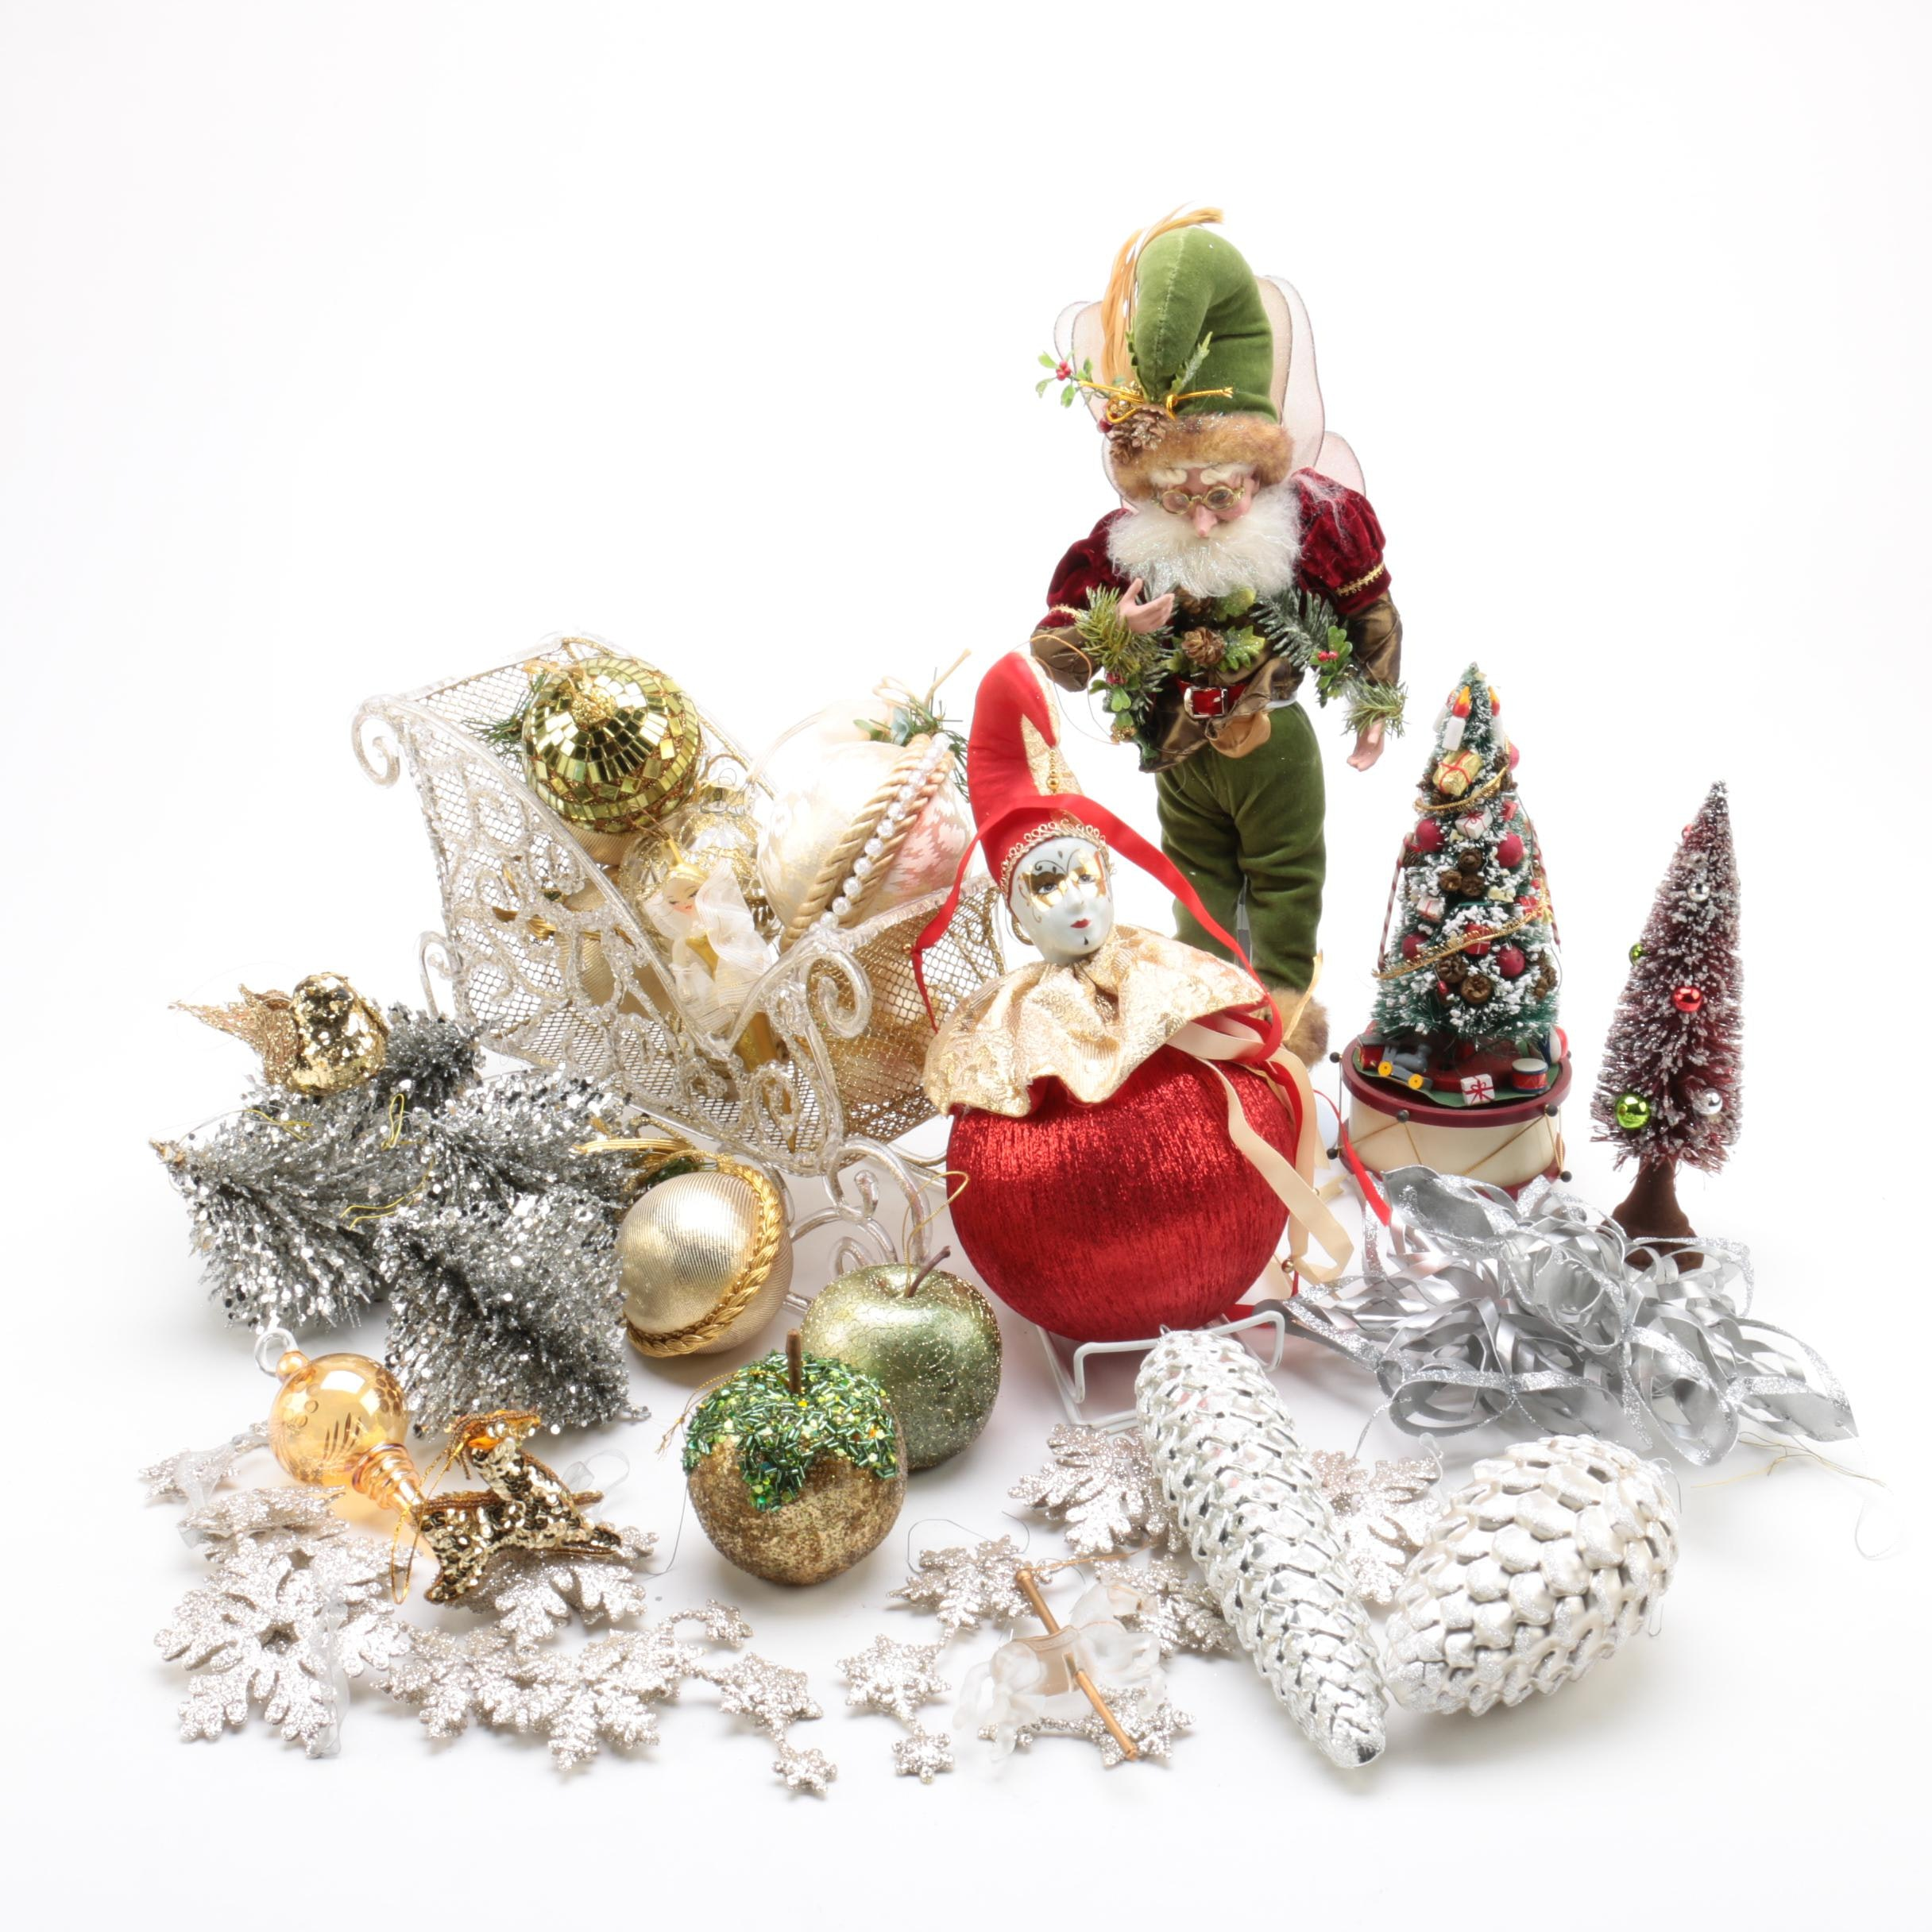 Christmas Ornaments and Figurines